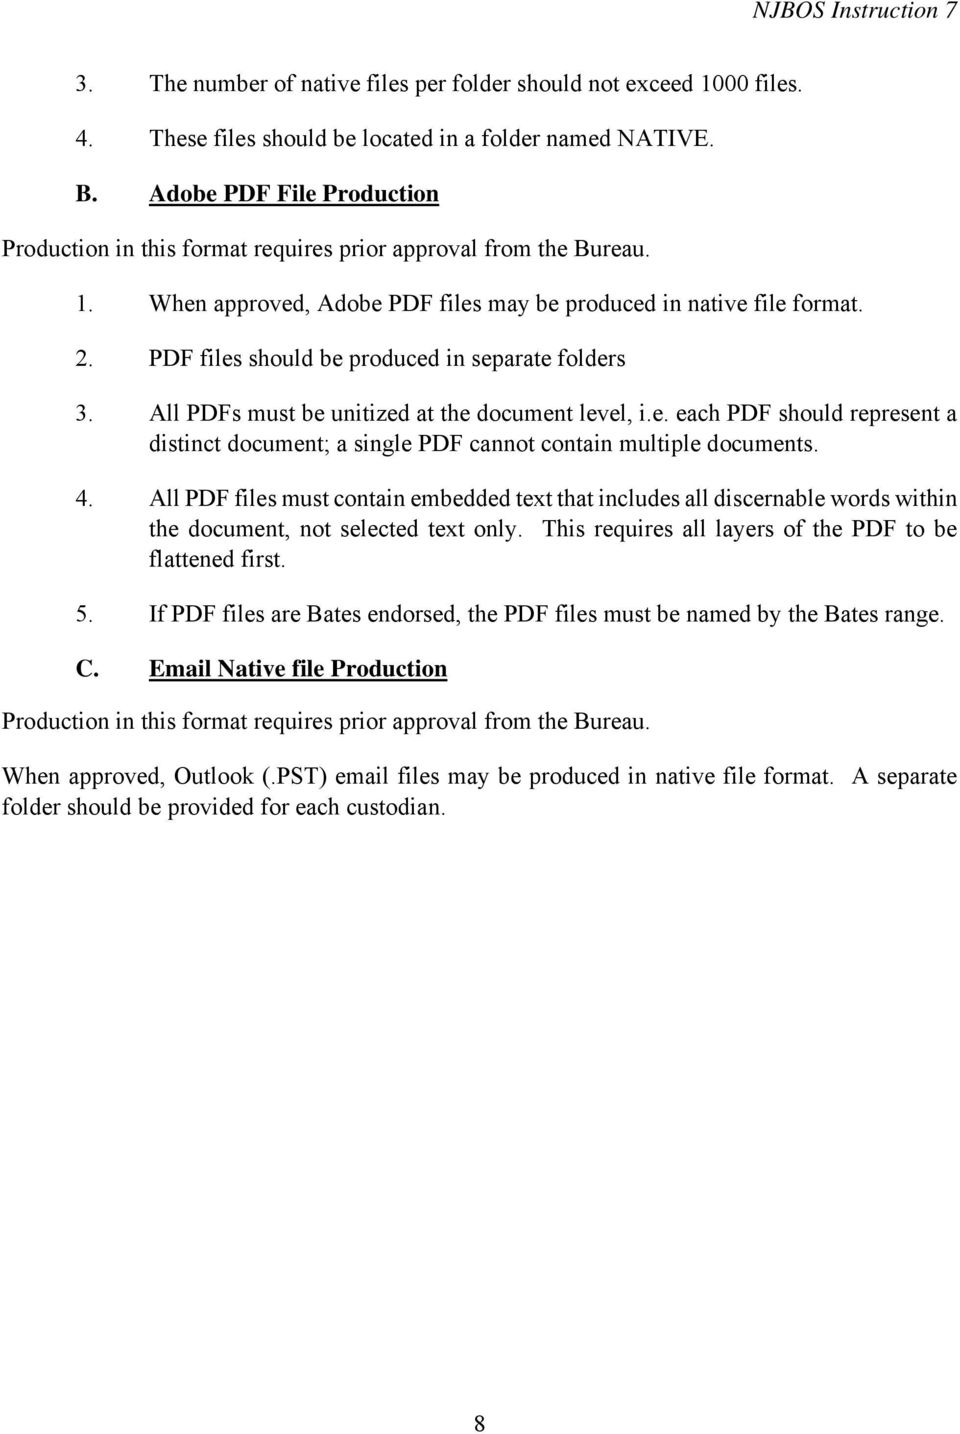 PDF files should be produced in separate folders 3. All PDFs must be unitized at the document level, i.e. each PDF should represent a distinct document; a single PDF cannot contain multiple documents.